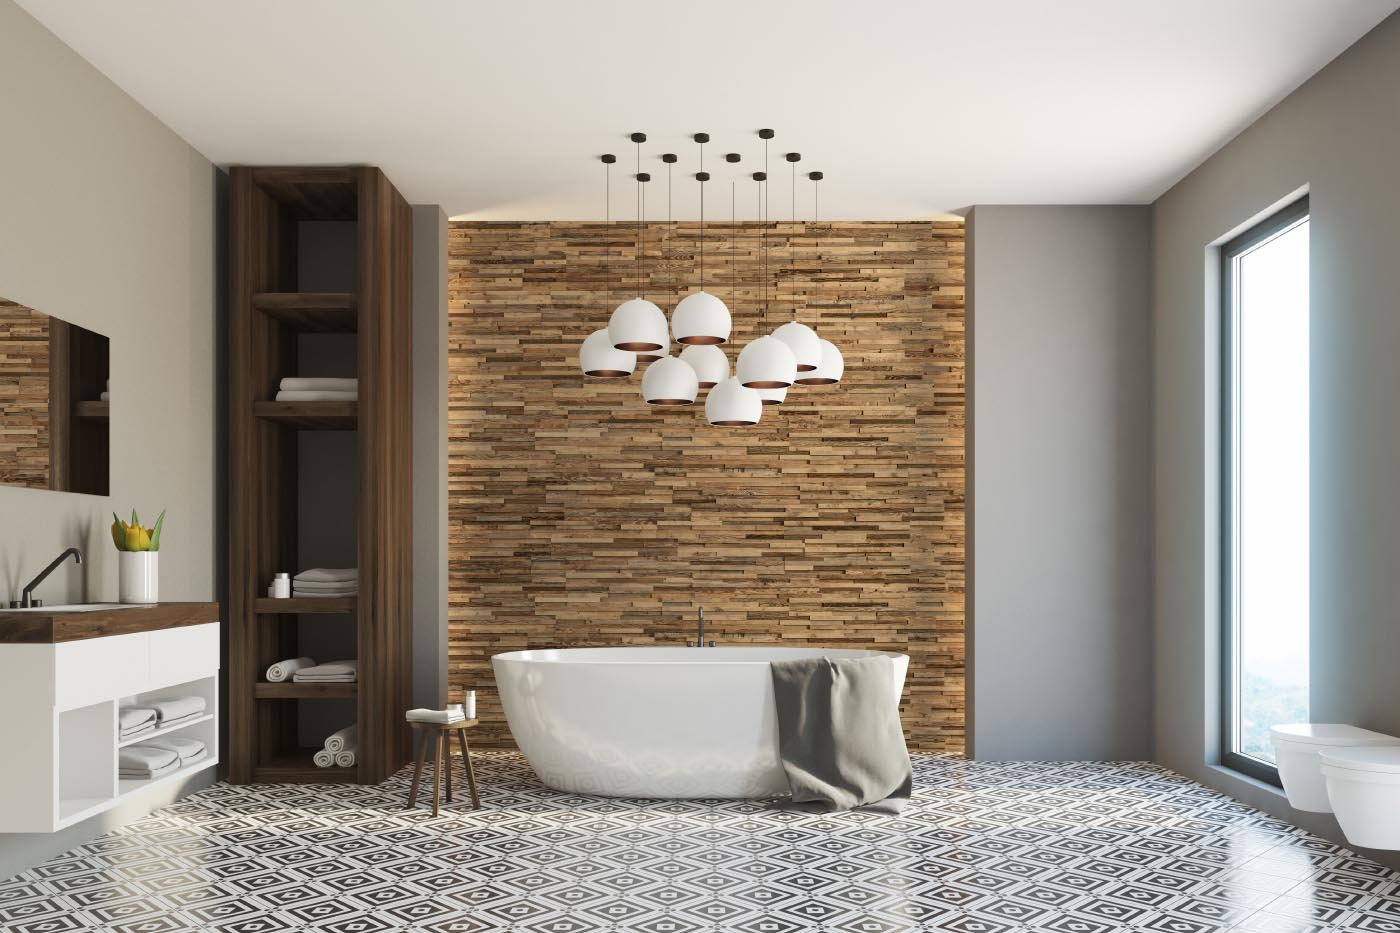 Decorative wall panel made from natural wood